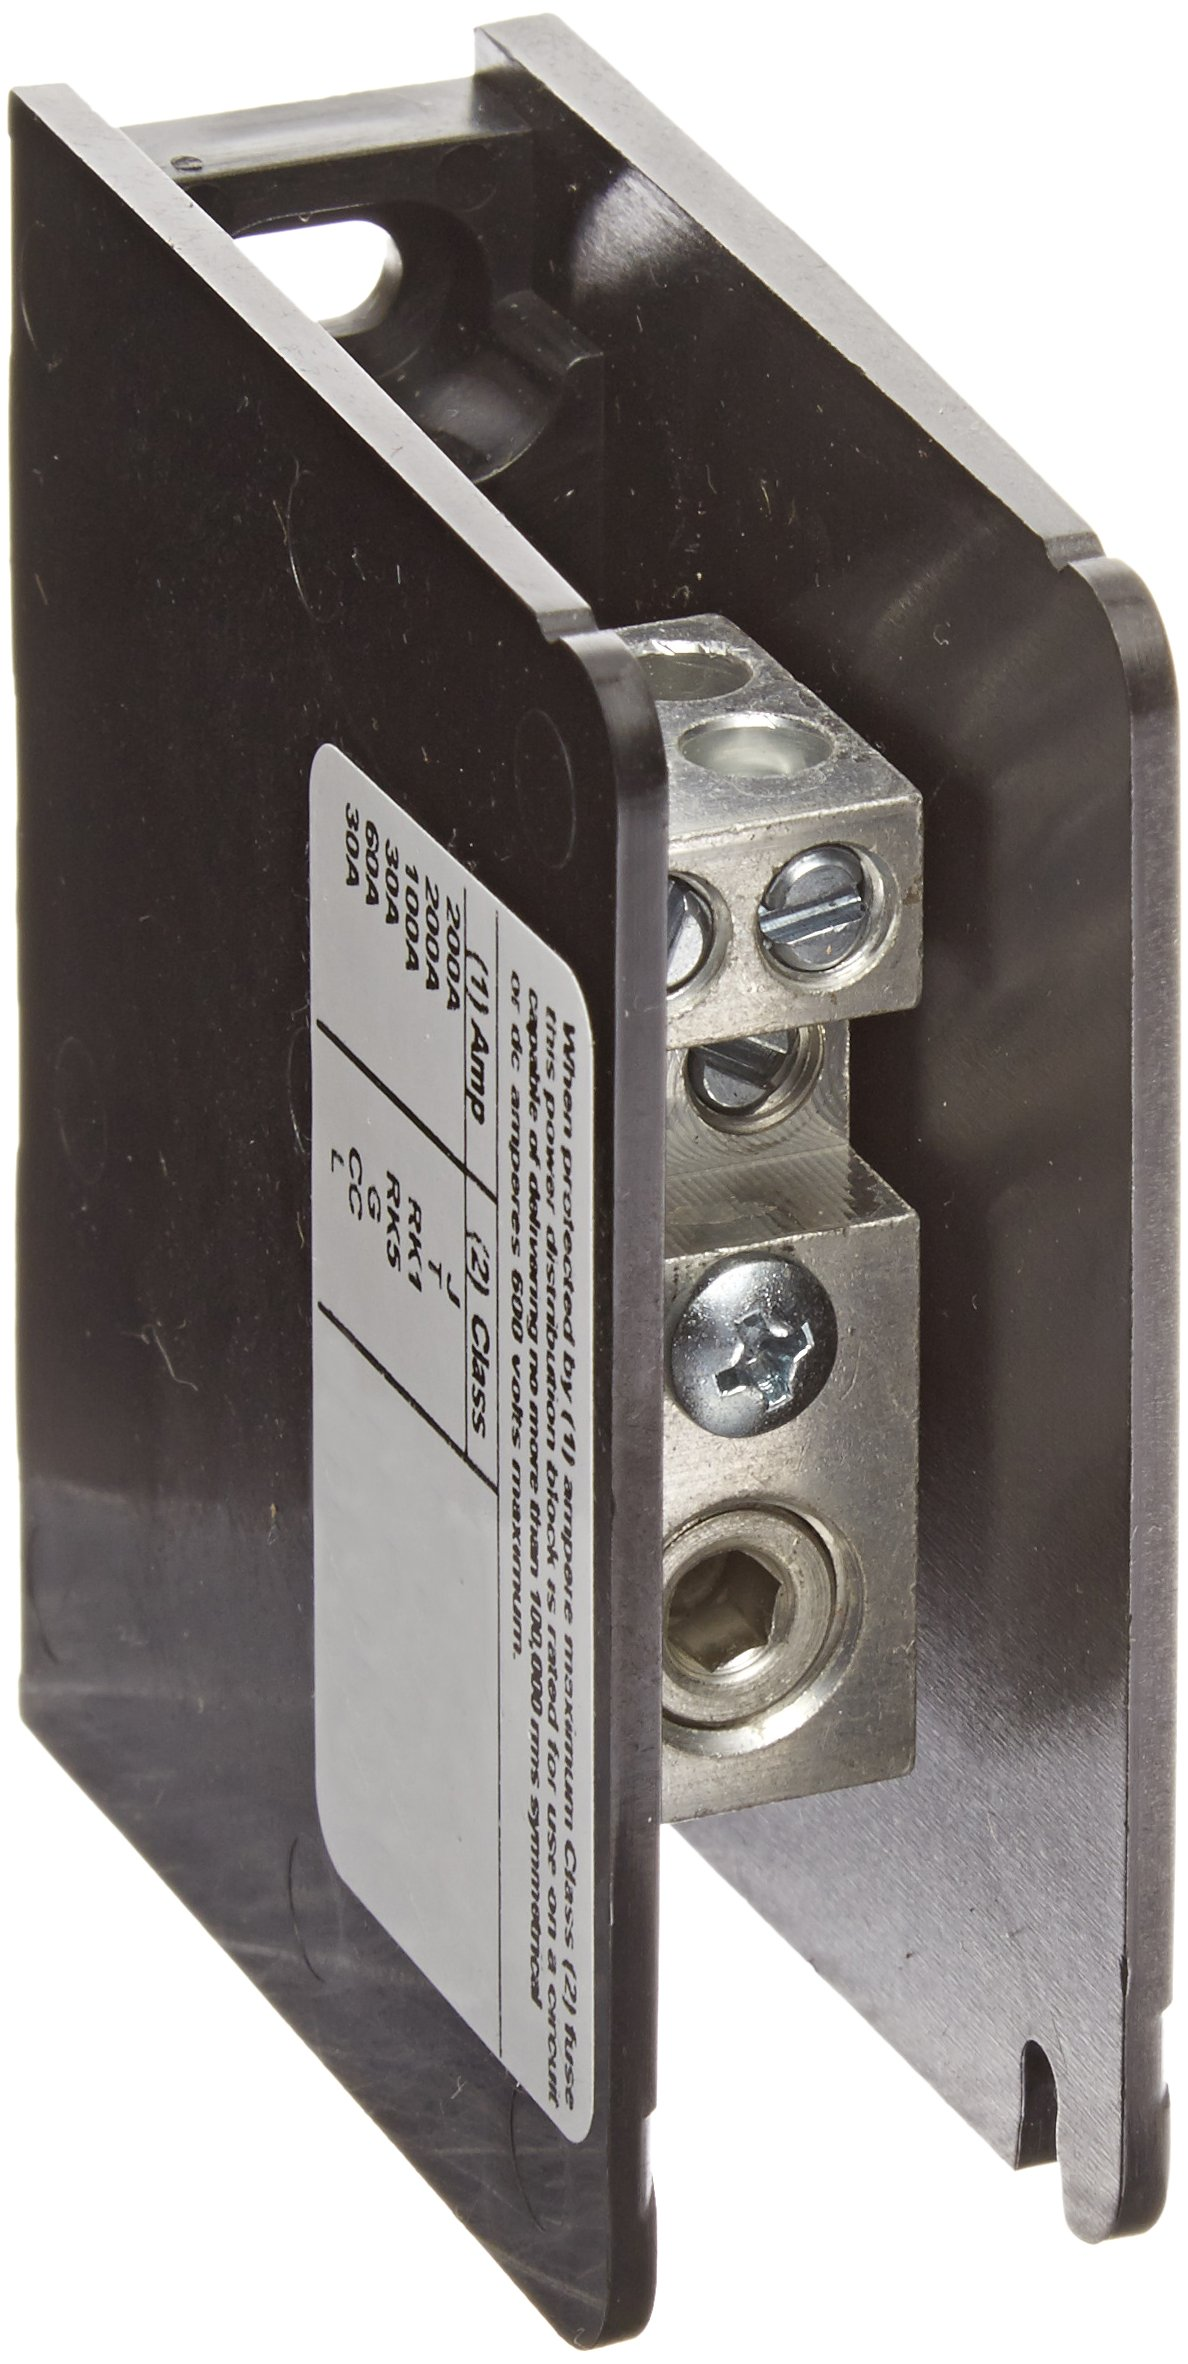 Mersen 63000 Aluminum Open Style Mini Box to Box Power Distribution Block with 1-Pole and 4 Stud, #4-14 Wire Size, 185 Ampere